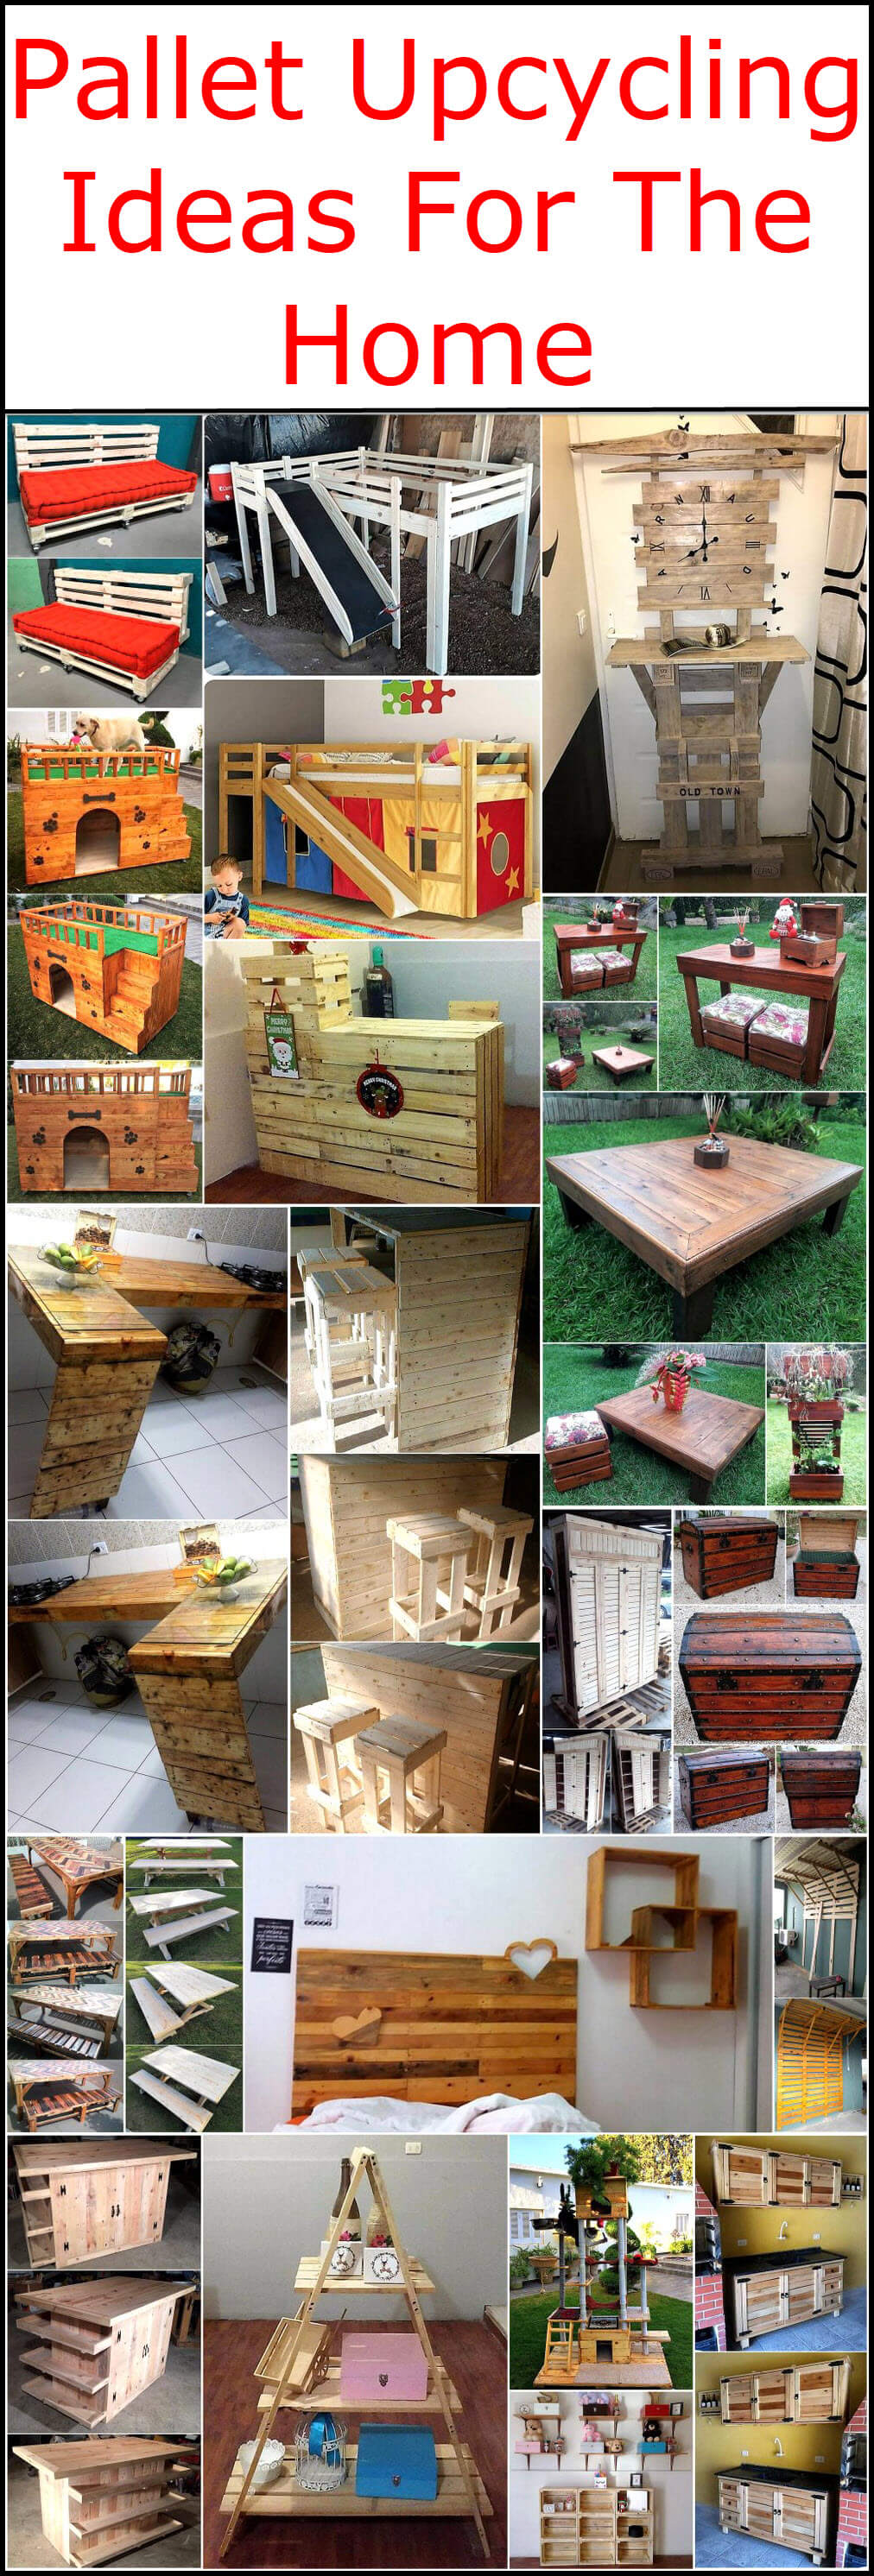 pallet upcycling ideas for the home pallet ideas